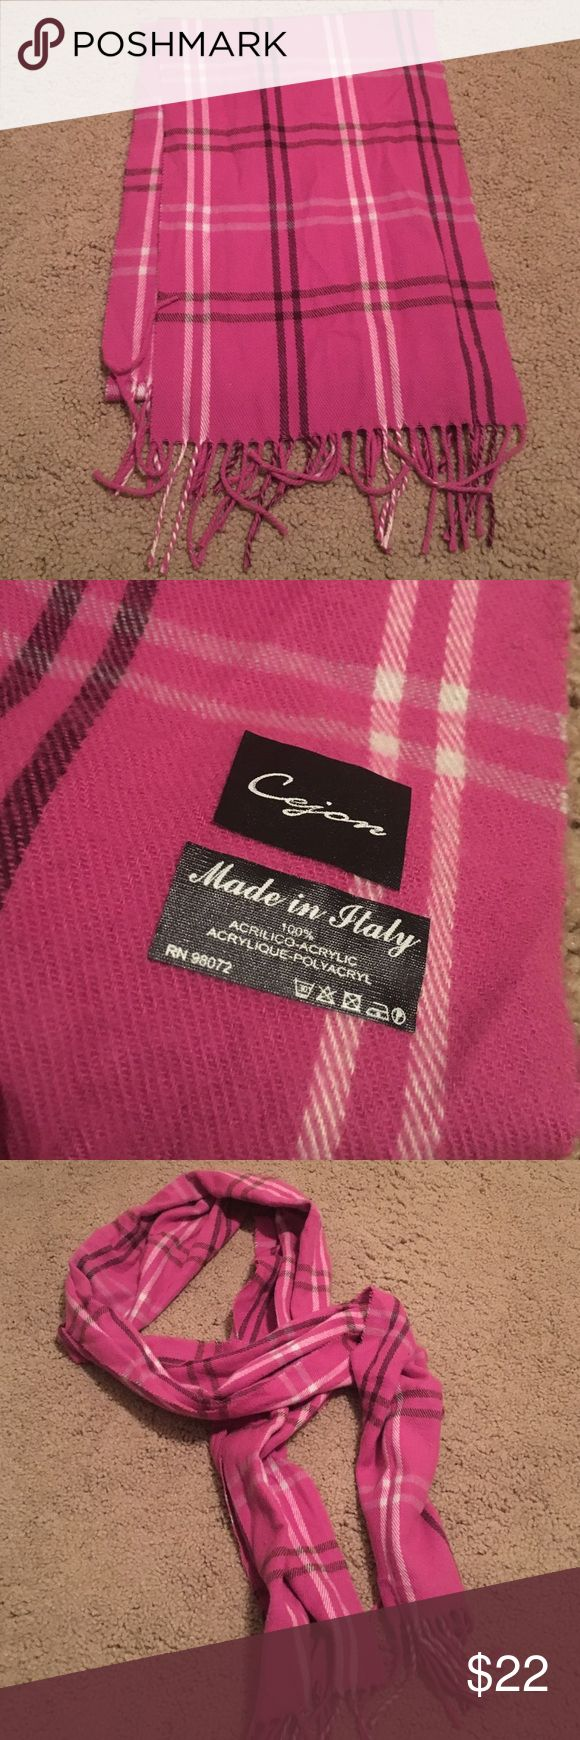 Purple scarf Purple burberry print scarf made in italy Accessories Scarves & Wraps